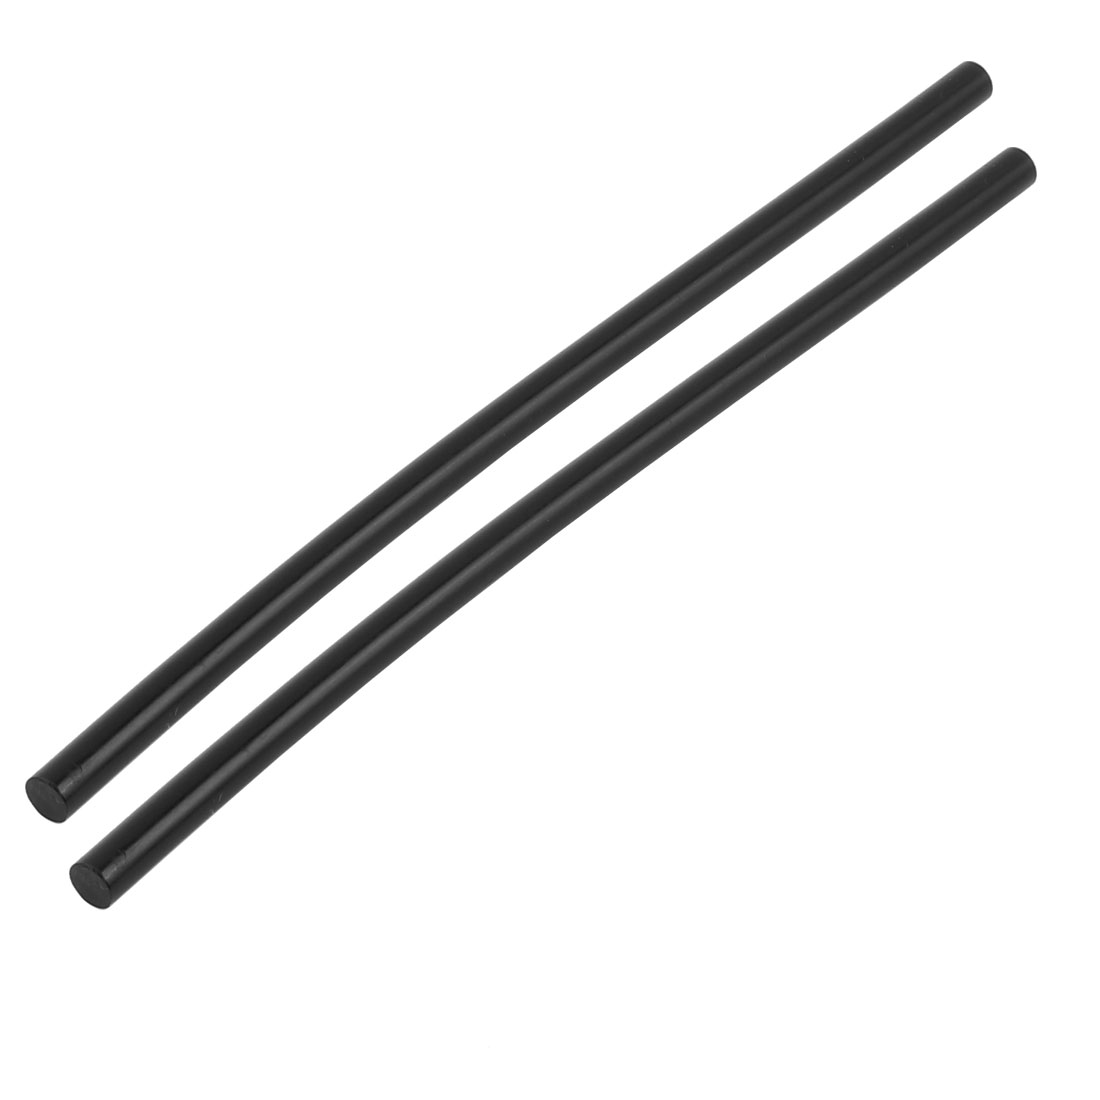 2pcs 7mm x 210mm Black Hot Melt Glue Stick for Electric Tool Hot Melt Glue Gun